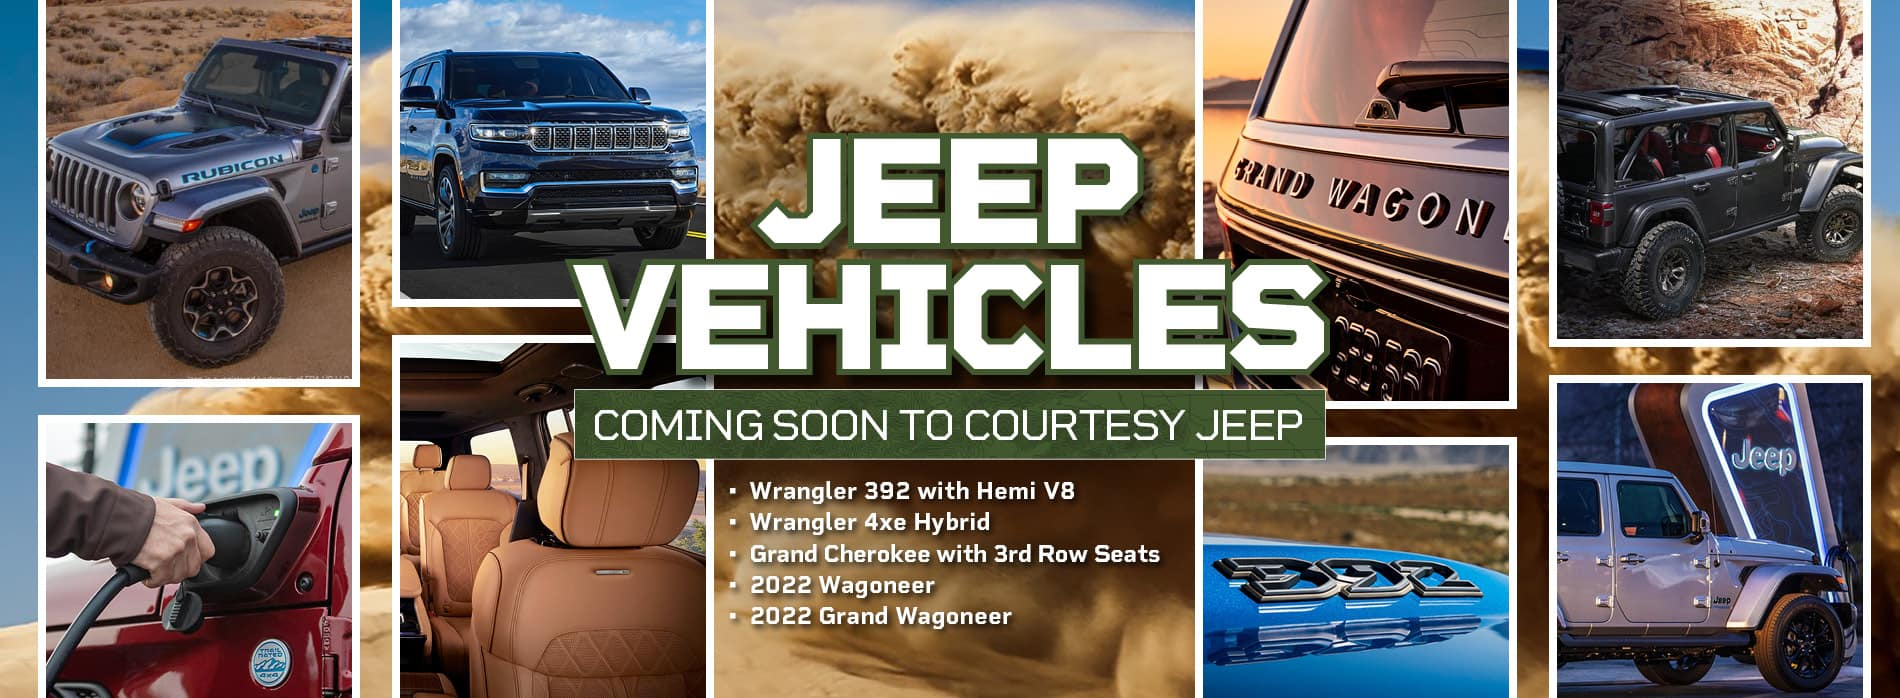 Jeeps Coming to Courtesy Jeep